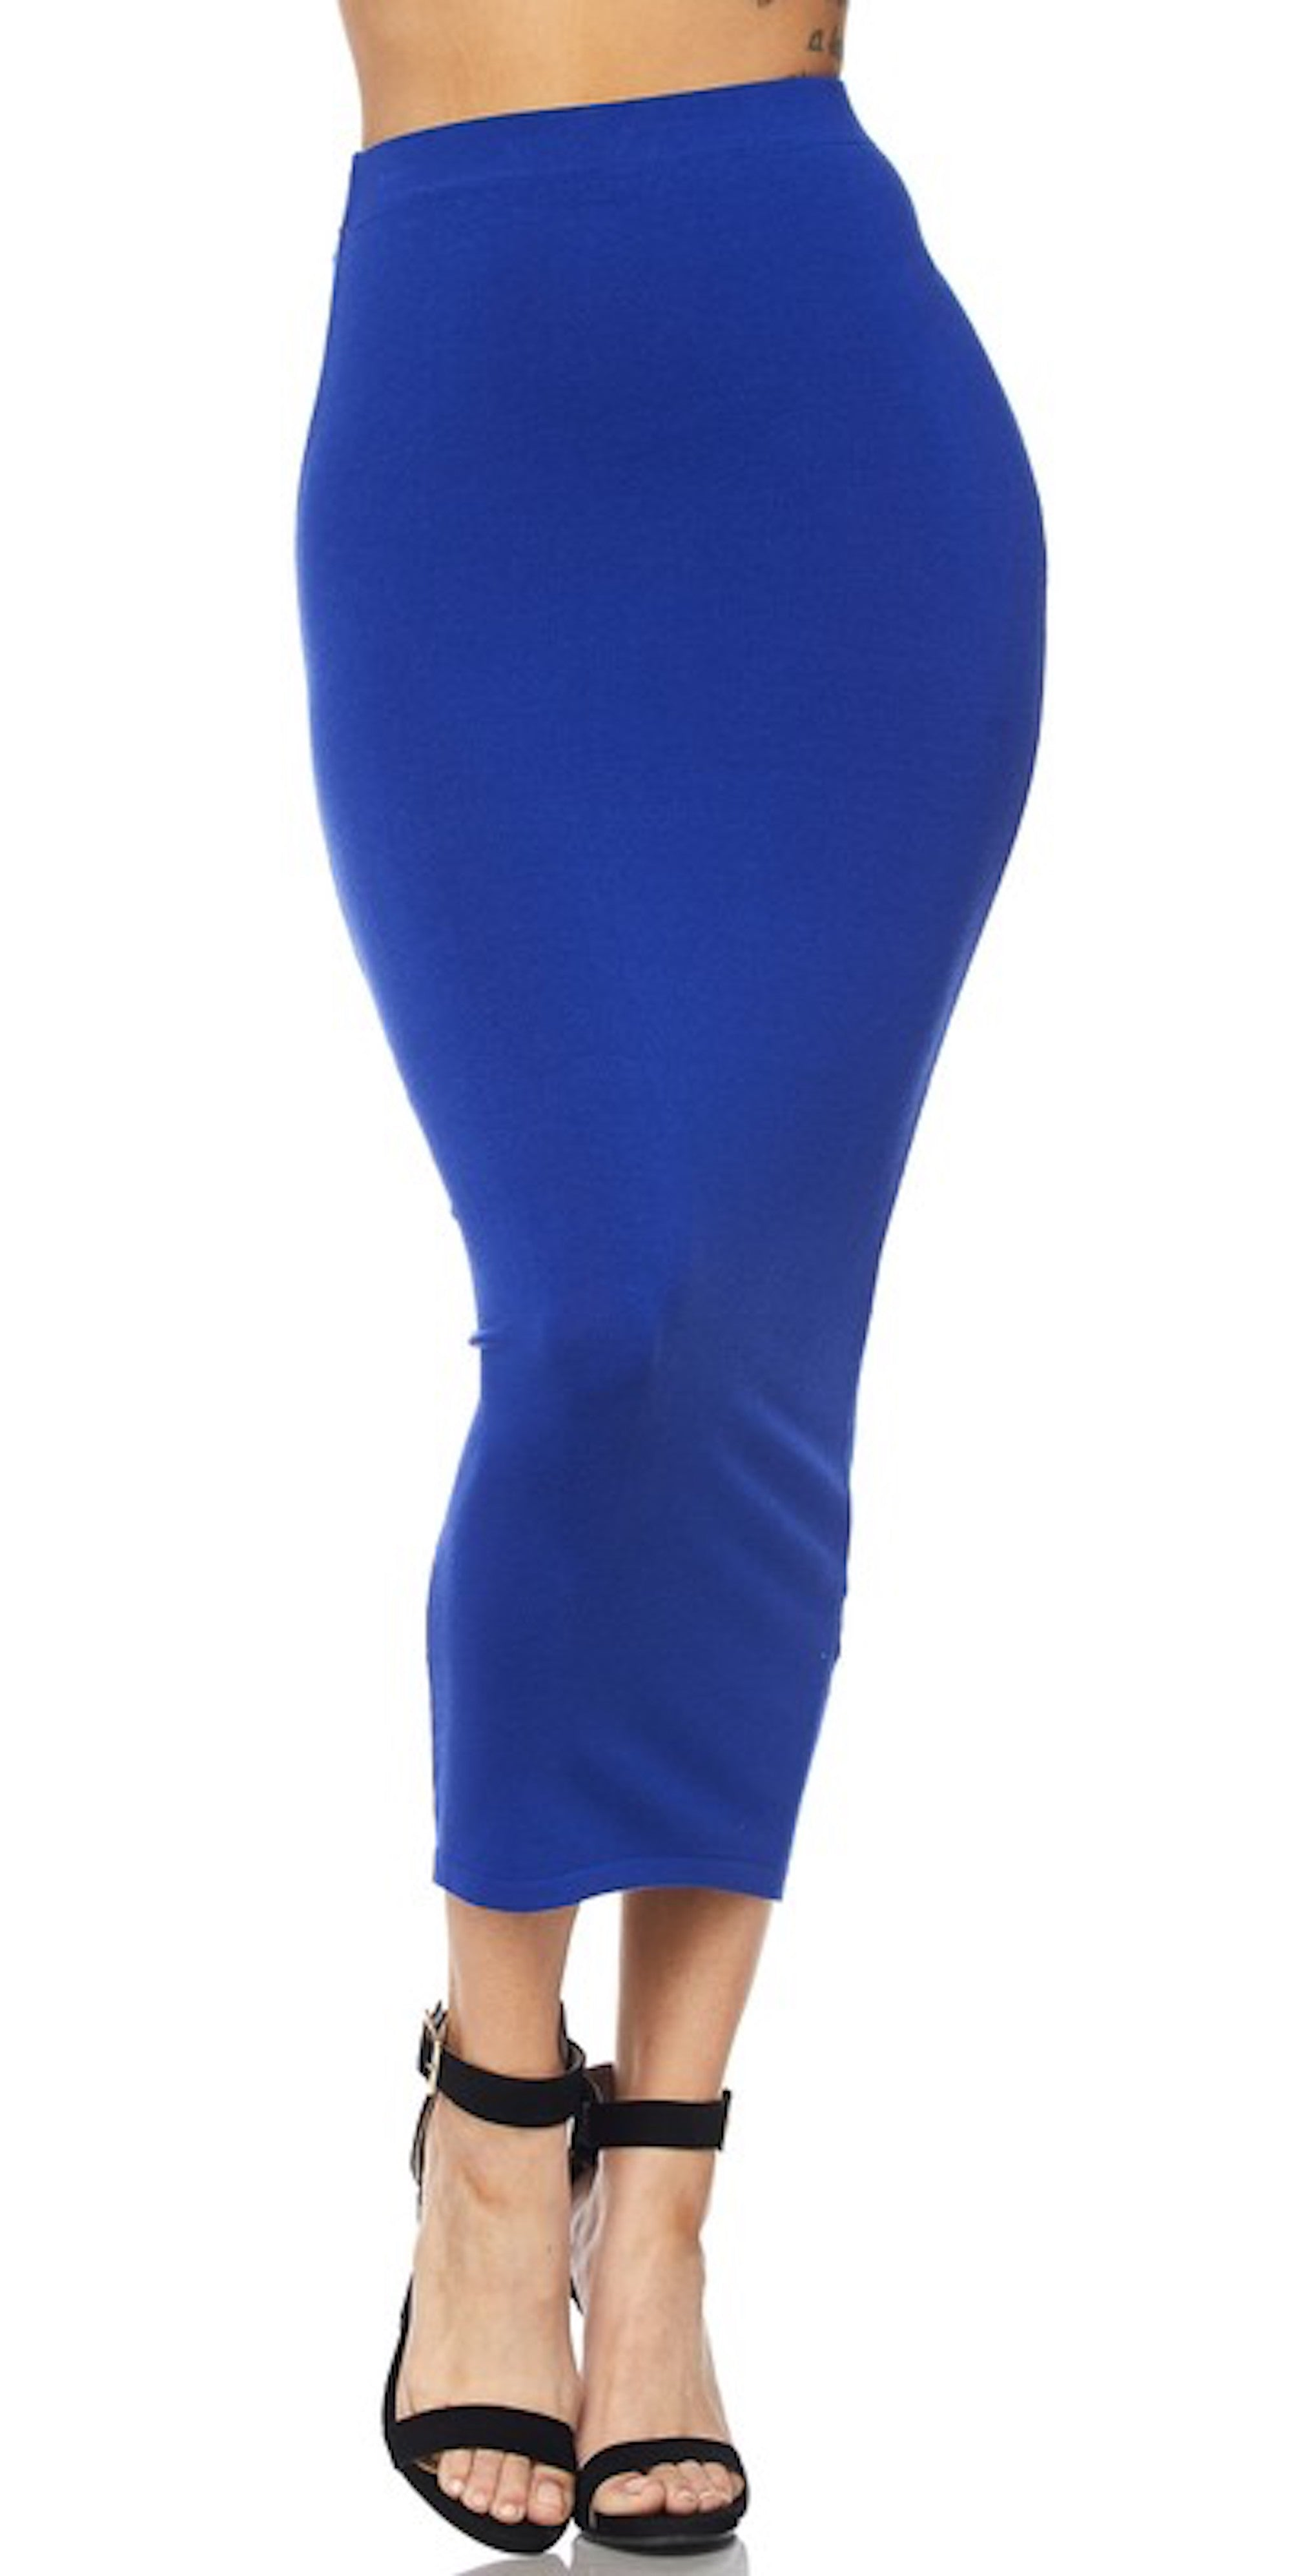 royal blue long pencil skirt fashion trend style clothes clothing